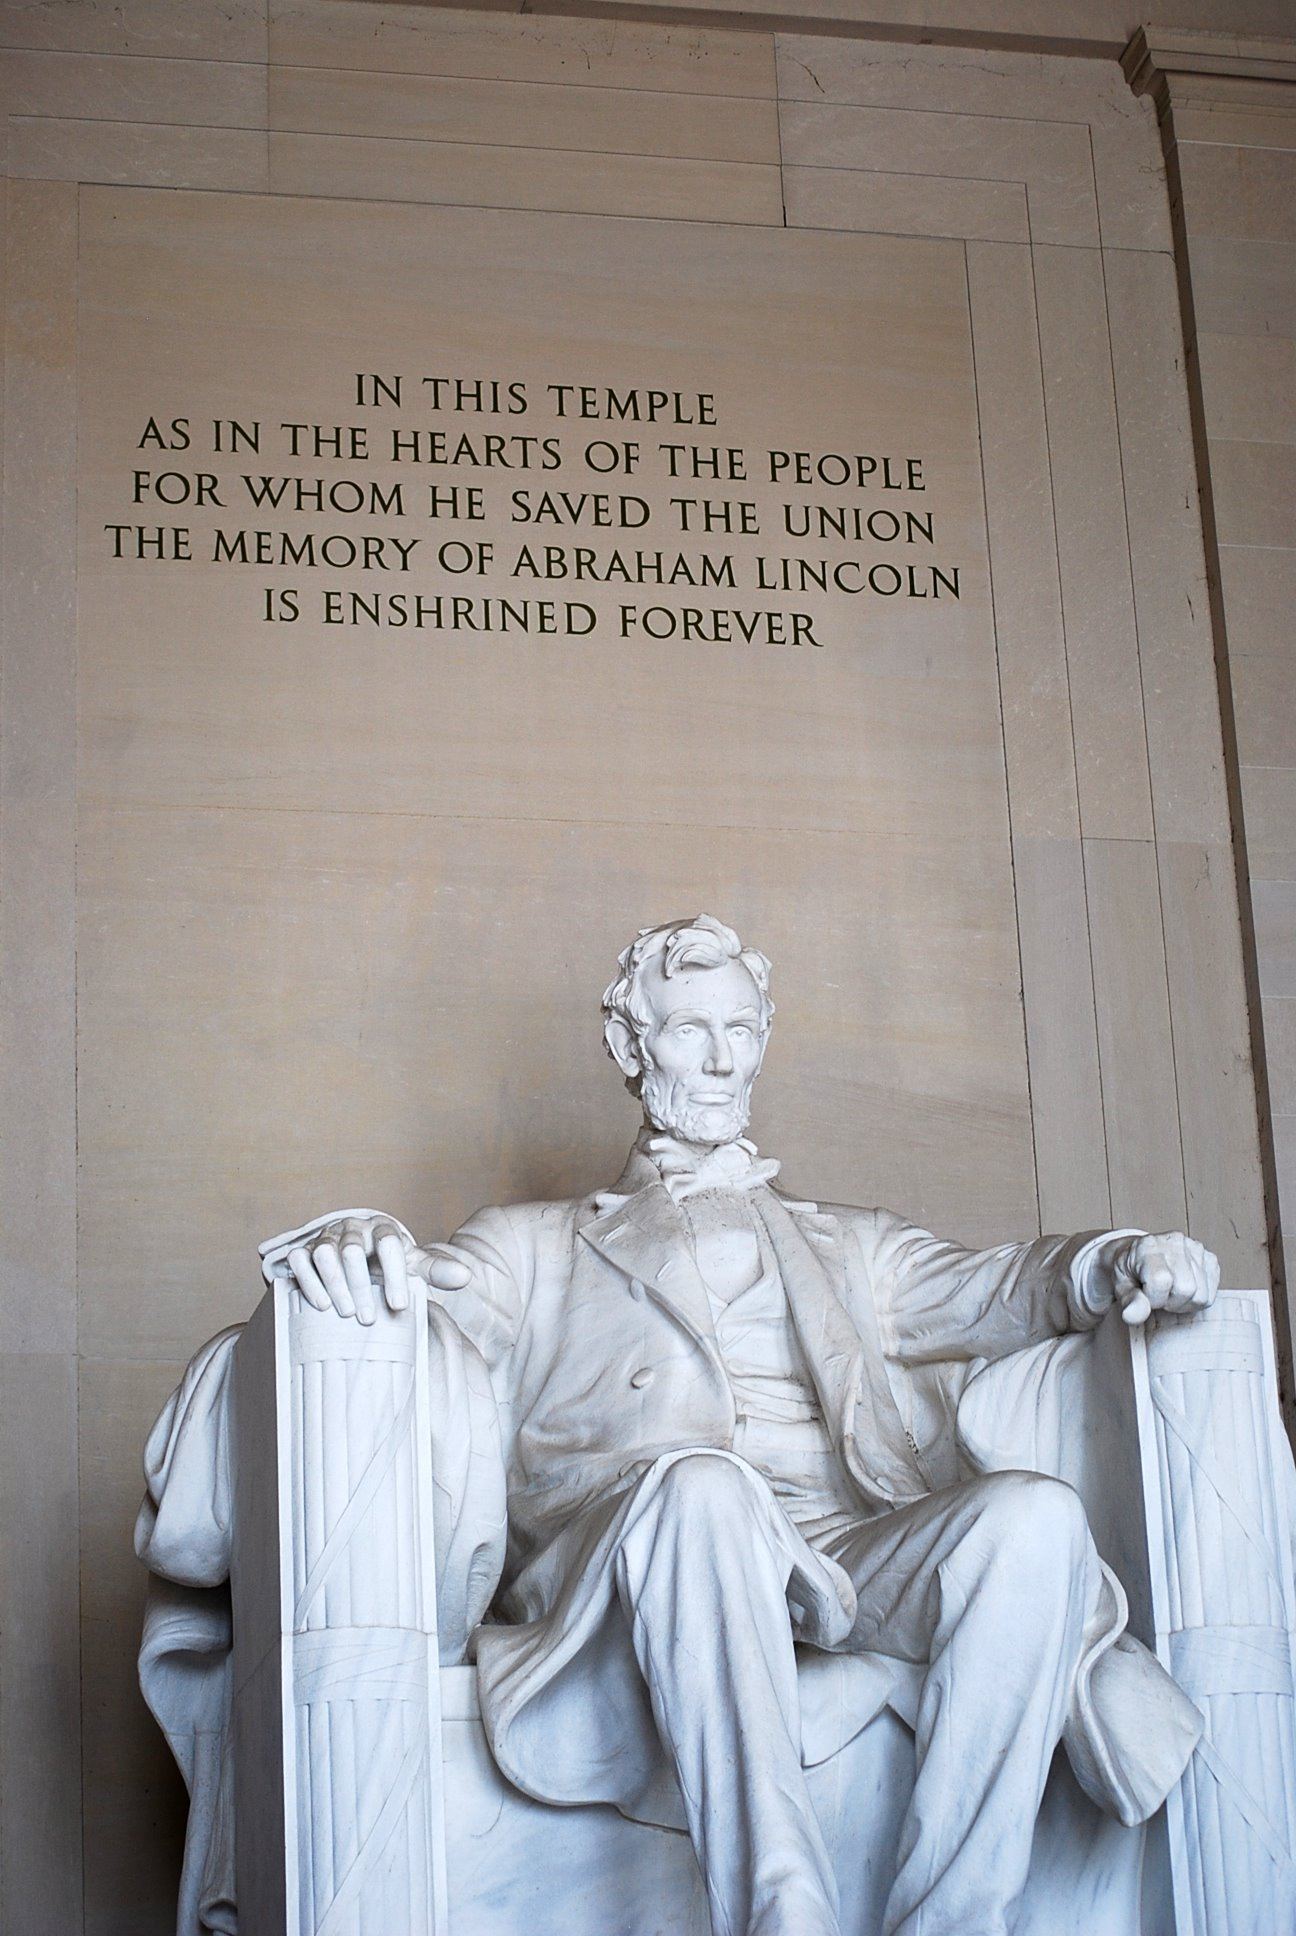 Lincoln Memorial, Washington, D.C.  Photo by Cathy Sherman.